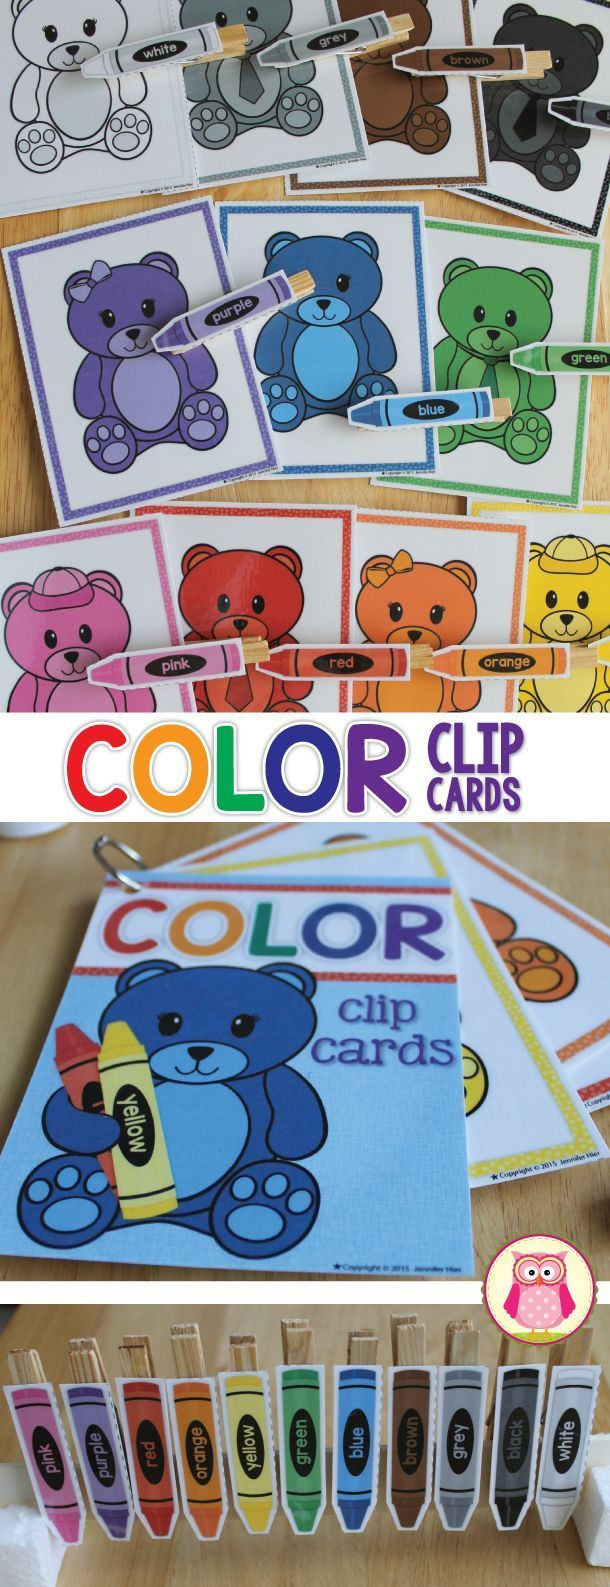 color matching bears bear color match clip cards for preschool and ece kid stuff preschool. Black Bedroom Furniture Sets. Home Design Ideas